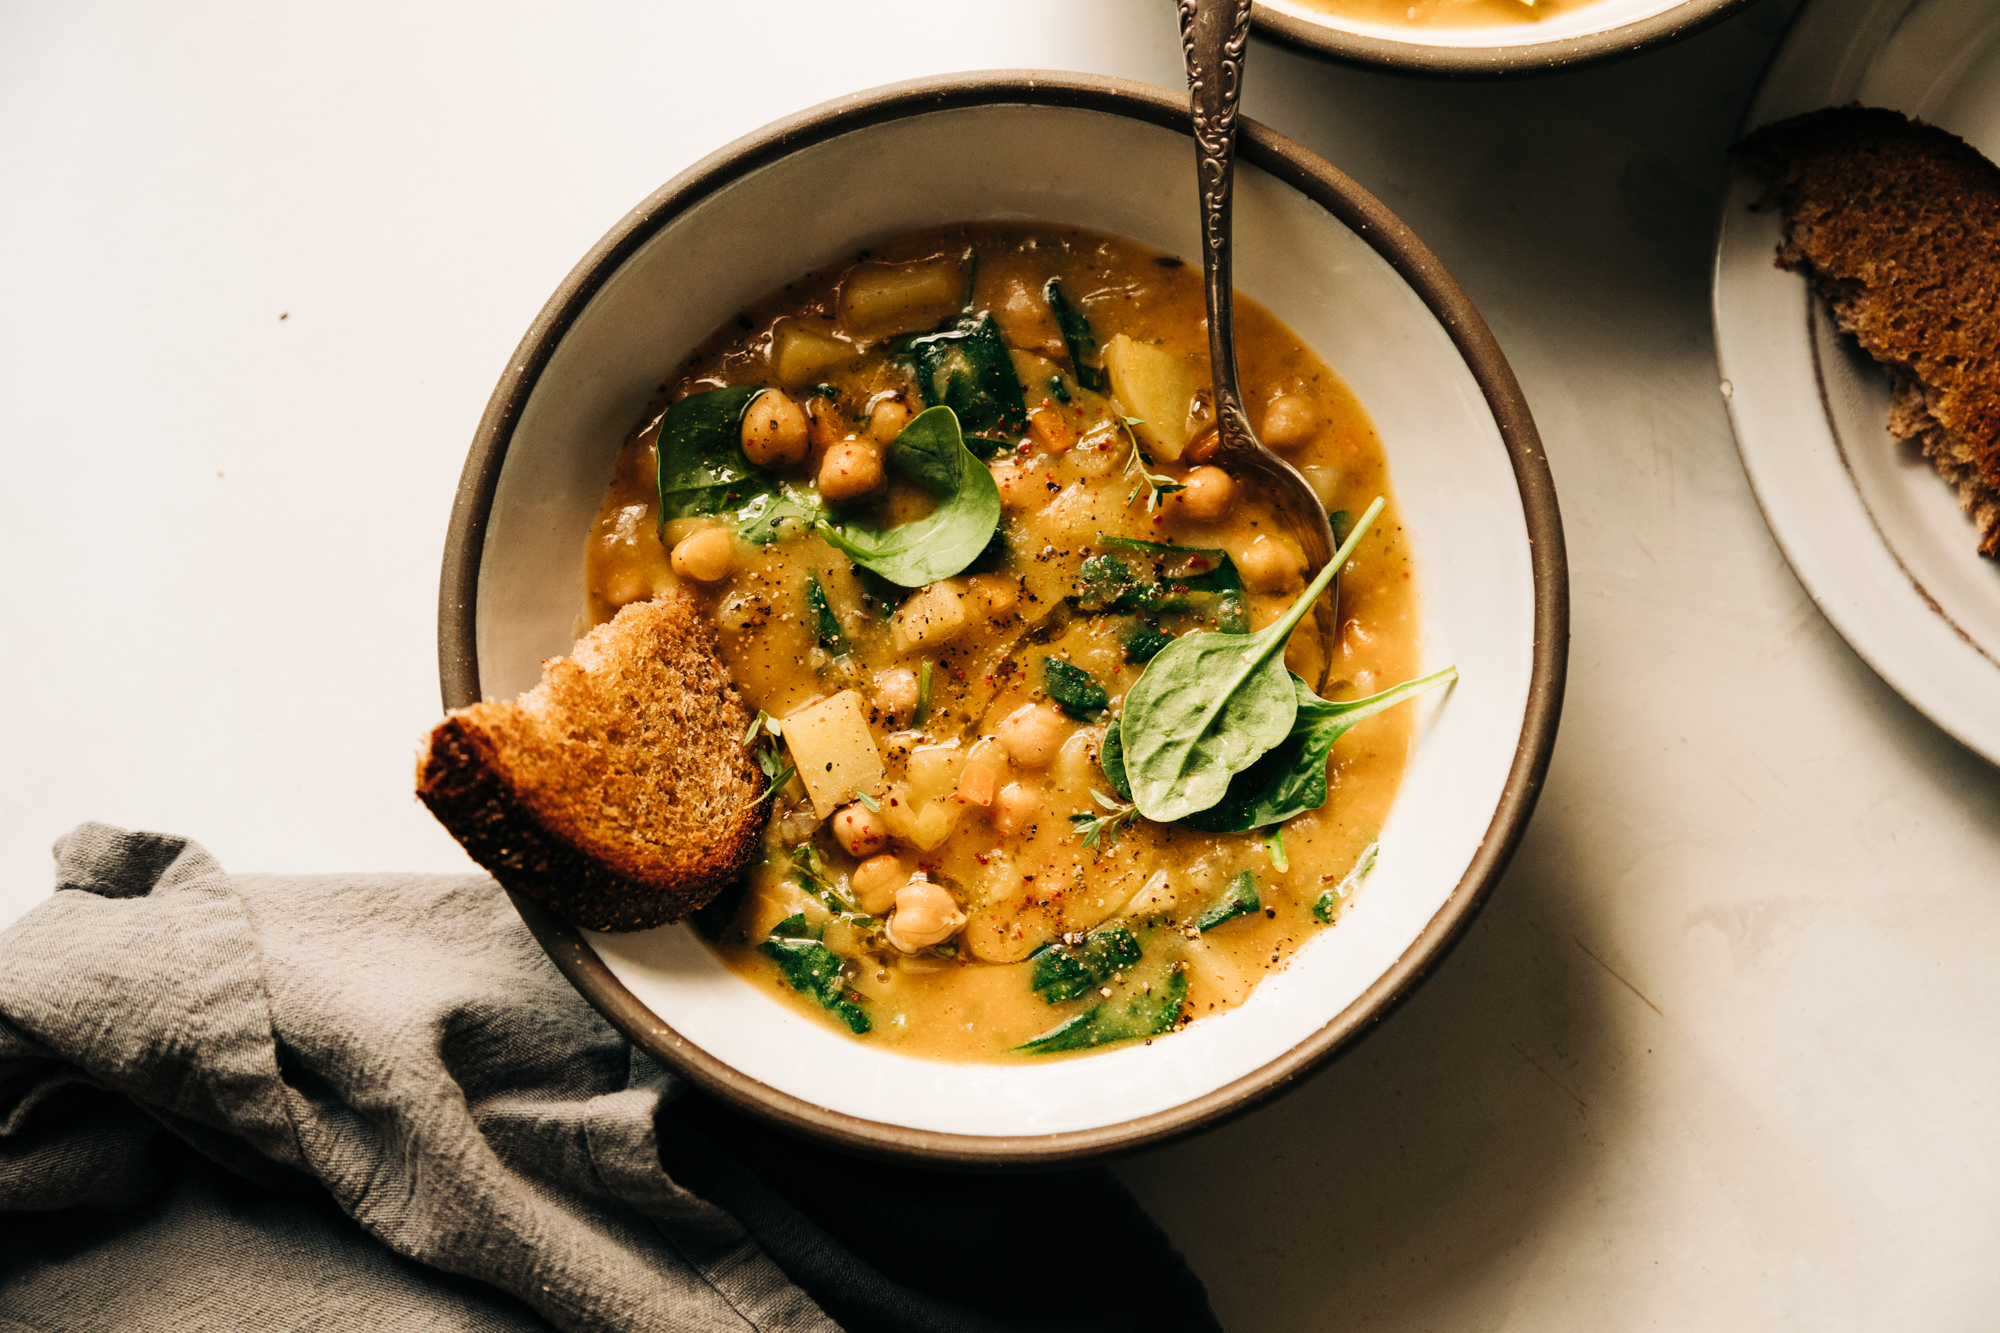 An overhead shot of a creamy and thick lemony chickpea soup with spinach and potatoes in a white ceramic bowl edges with grey. A piece of whole grain bread is sticking out of the soup.